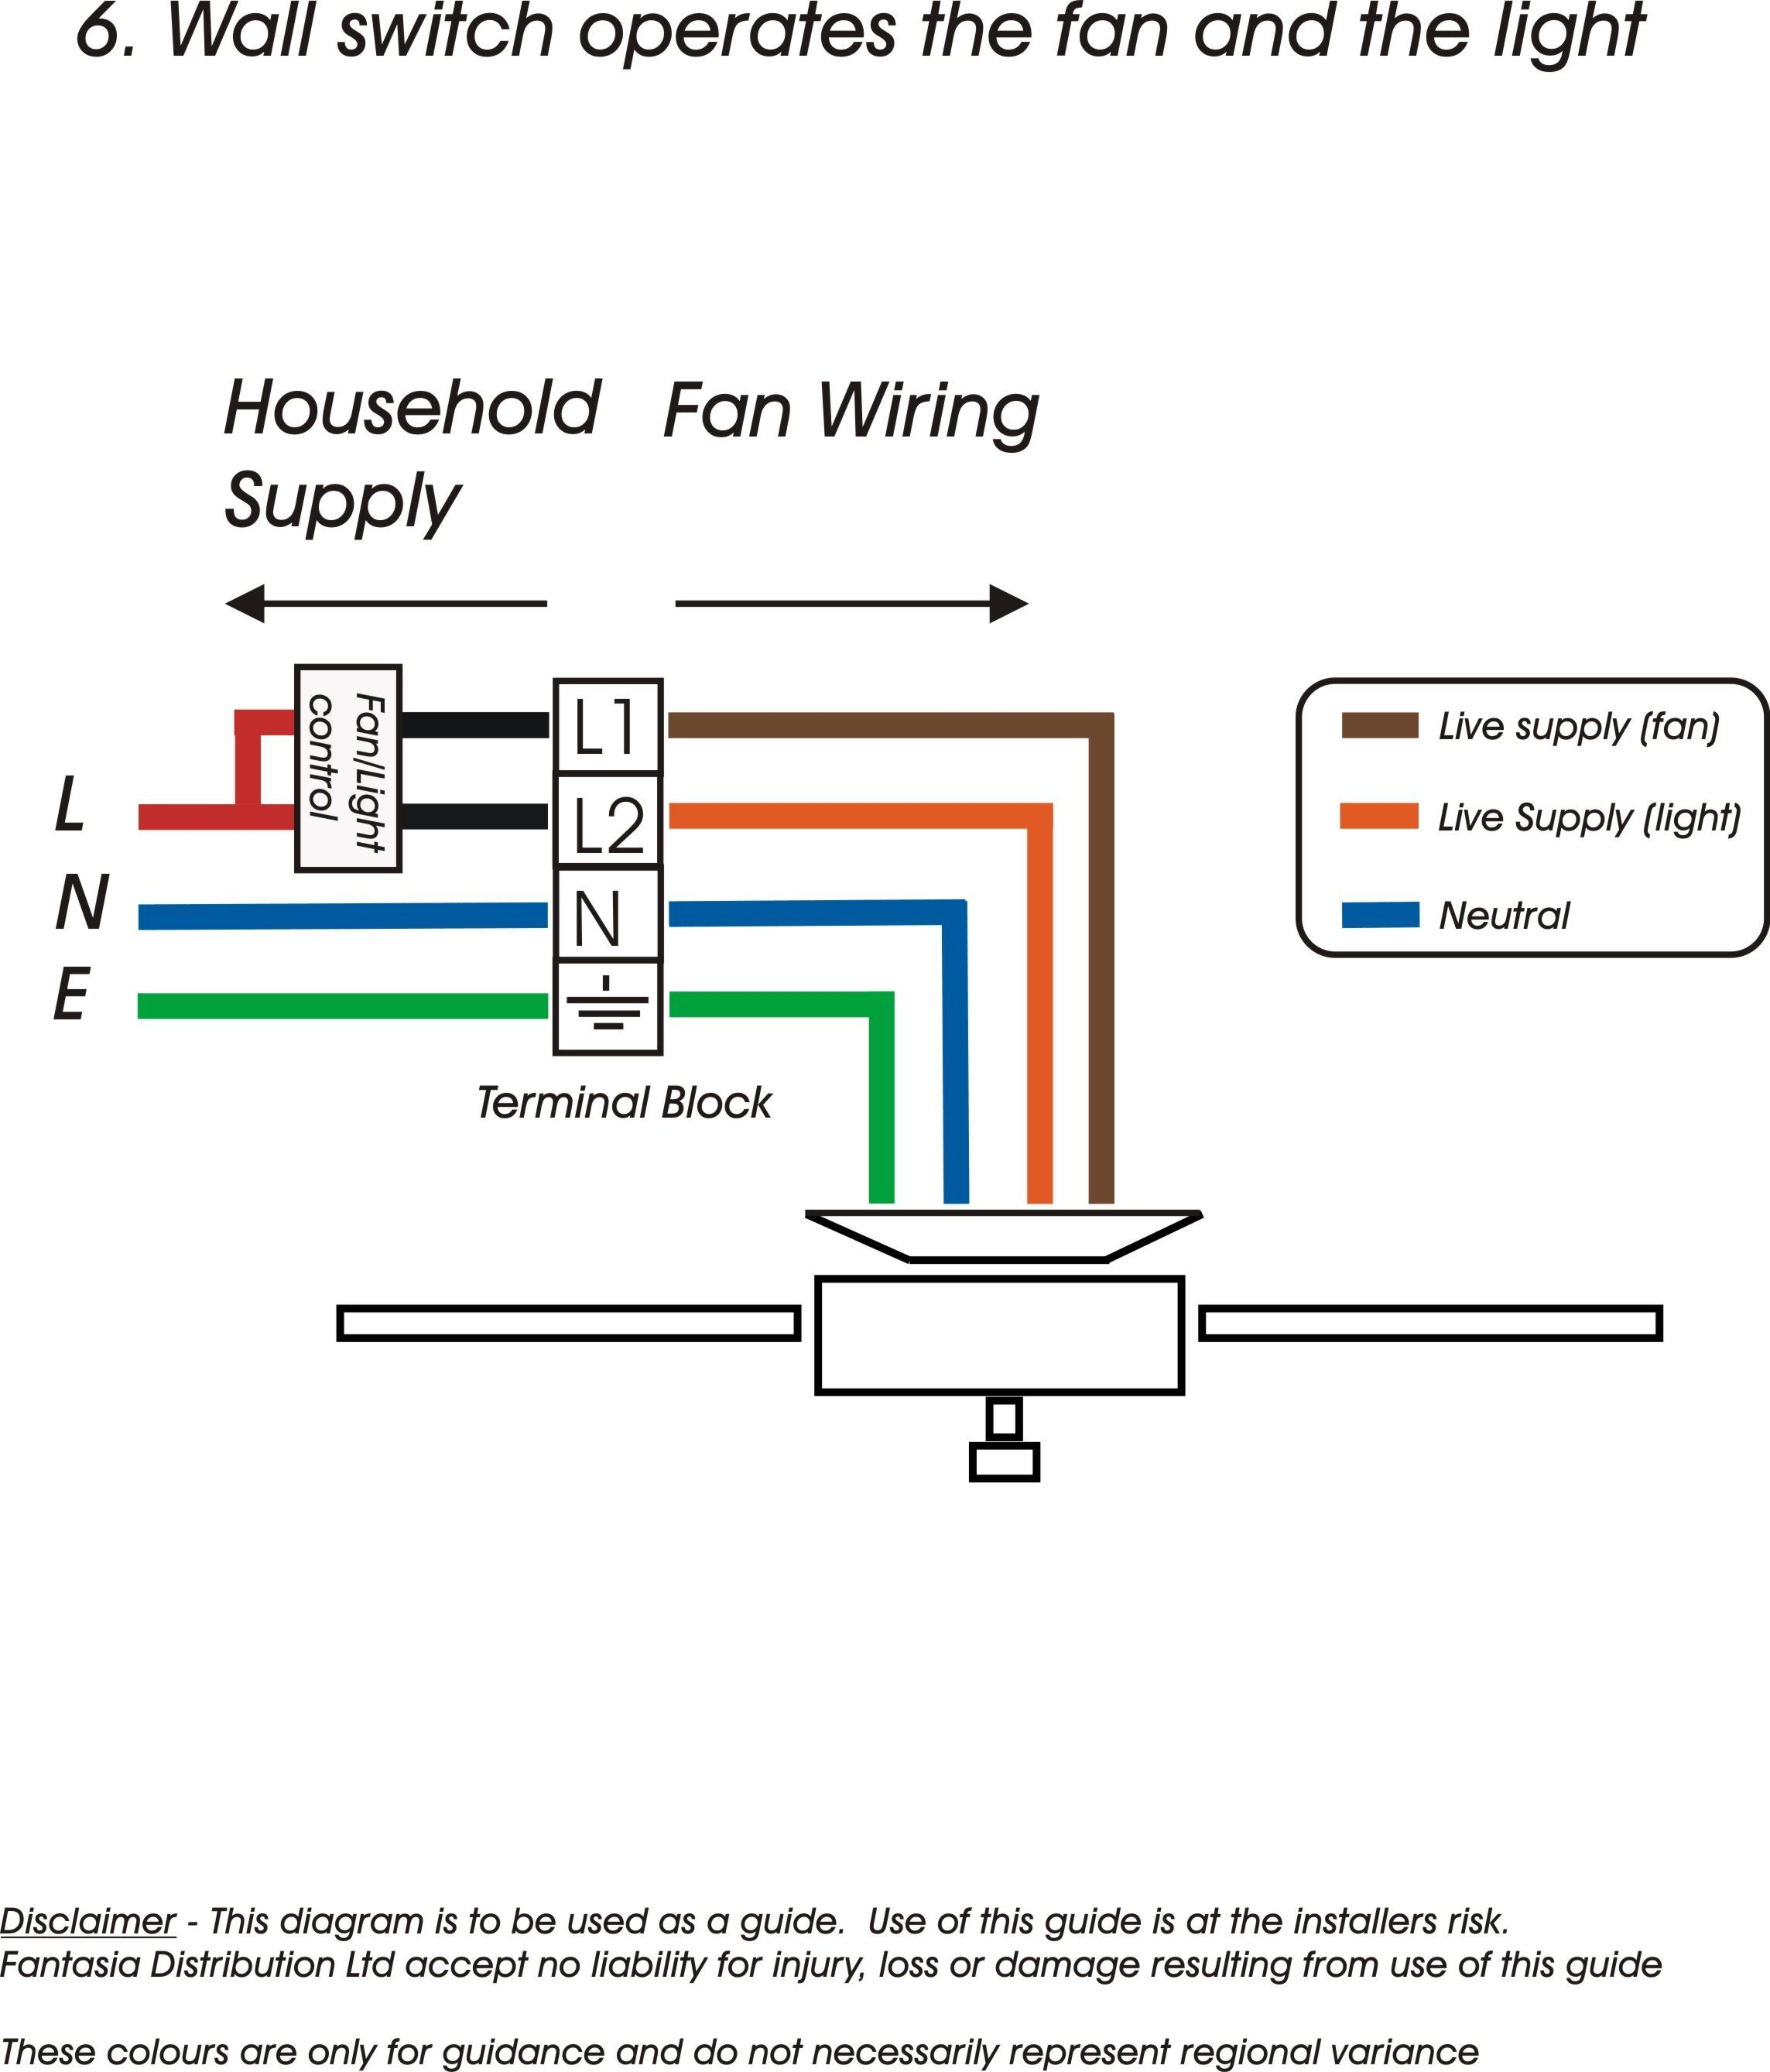 Hunter fan switch 27183 wiring diagram httponlinecompliance hunter fan switch 27183 wiring diagram asfbconference2016 Image collections